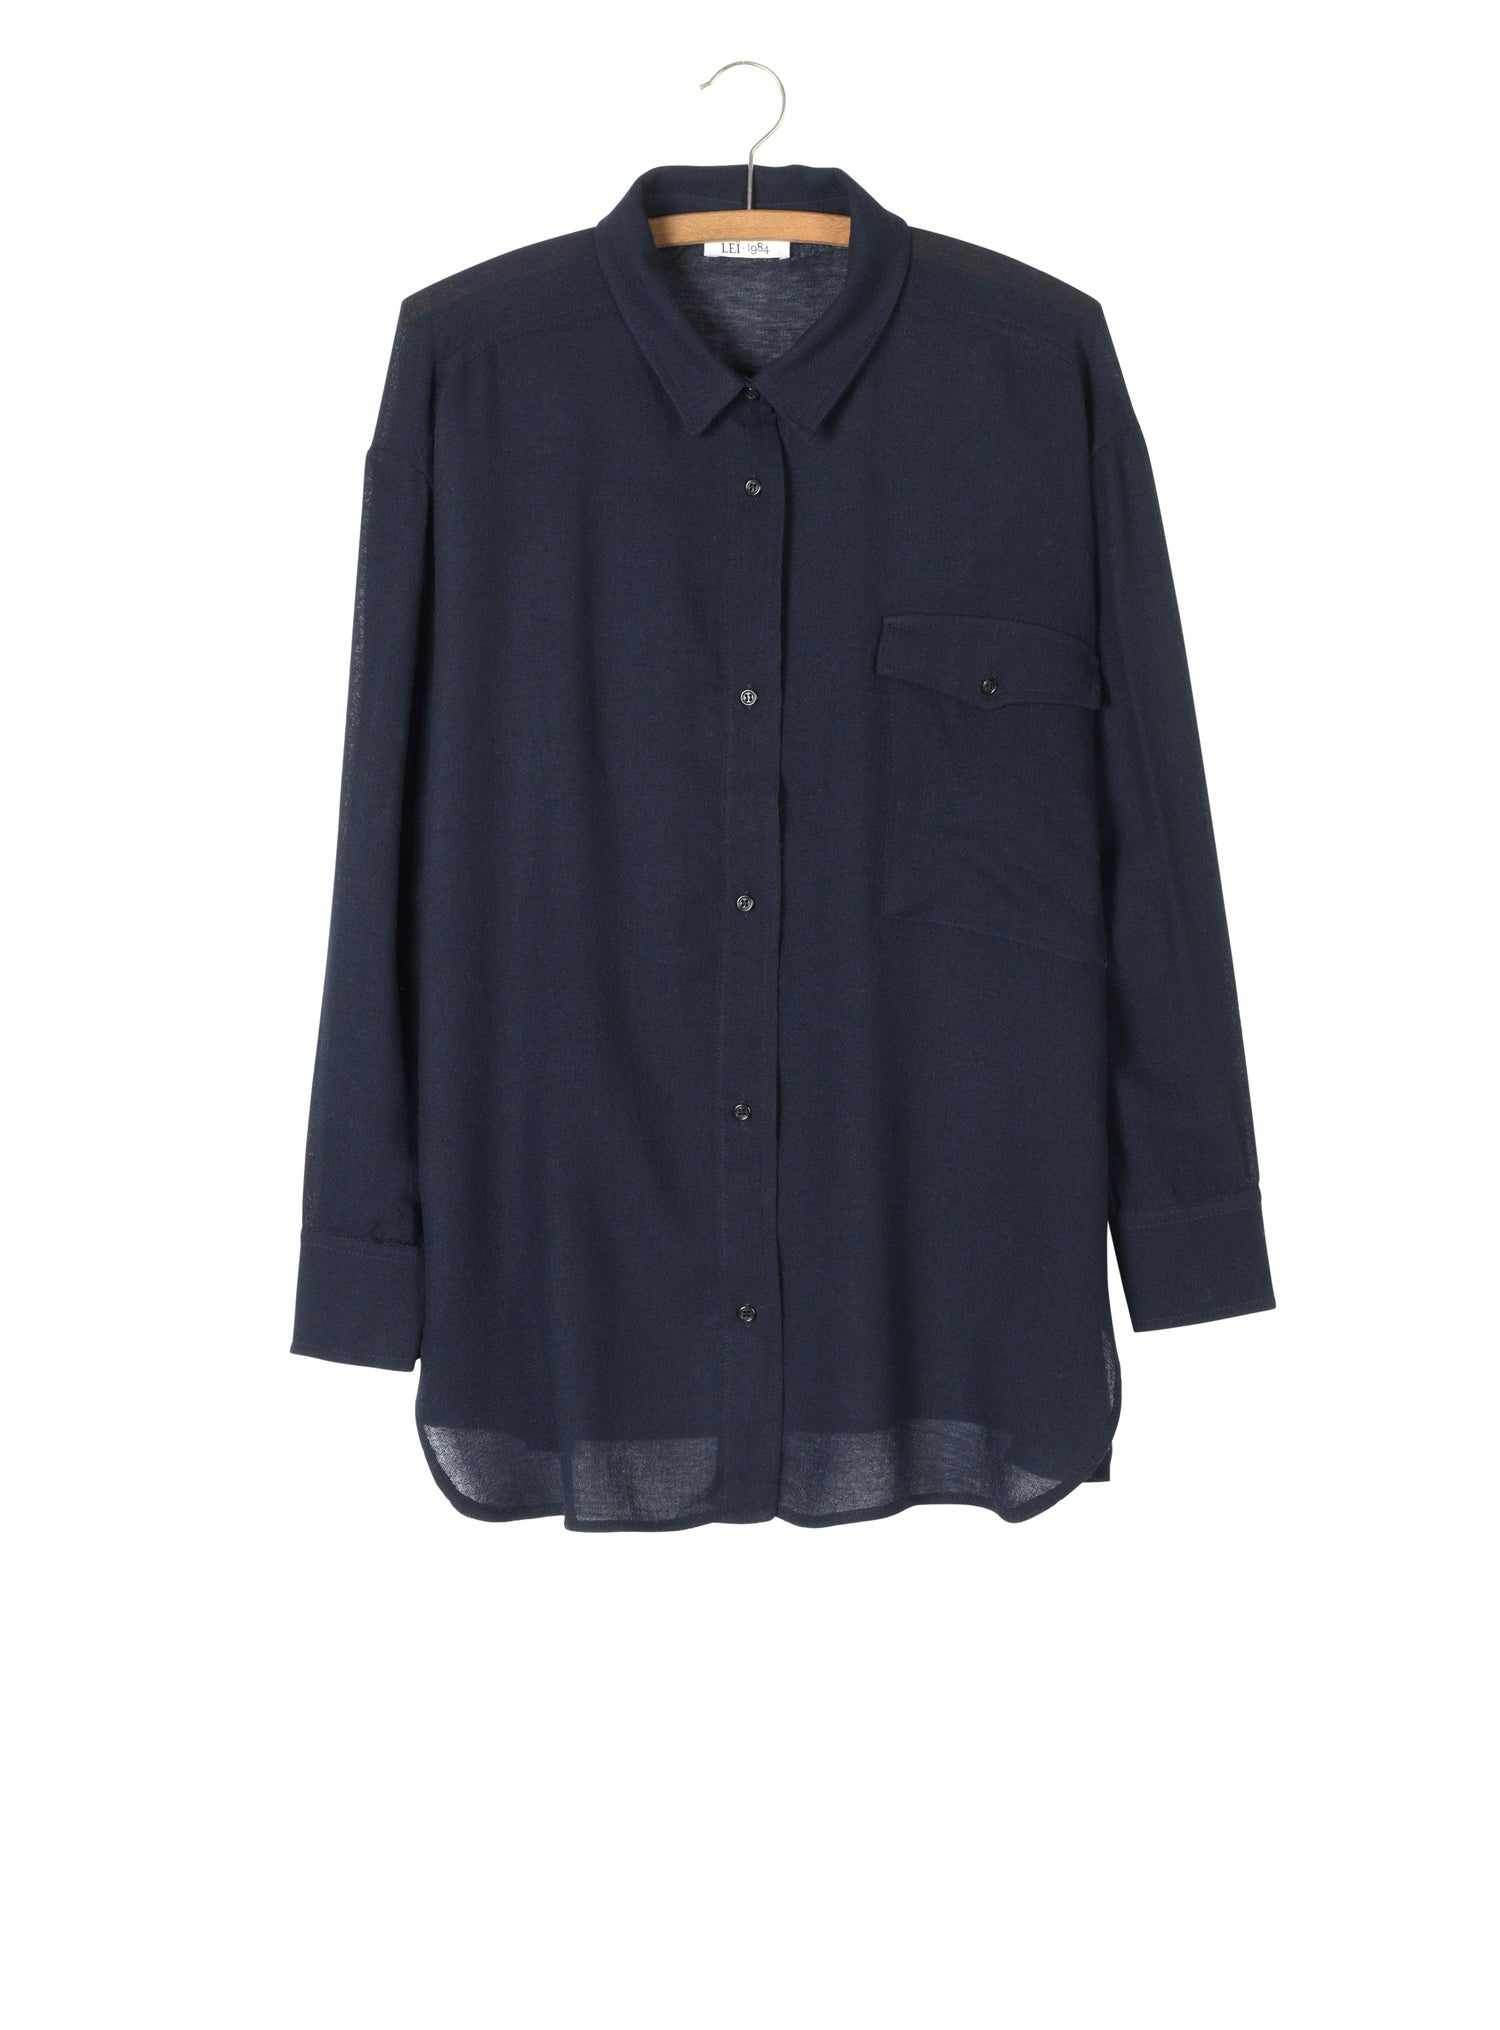 Image of Chemise PAUL 130€ -60%